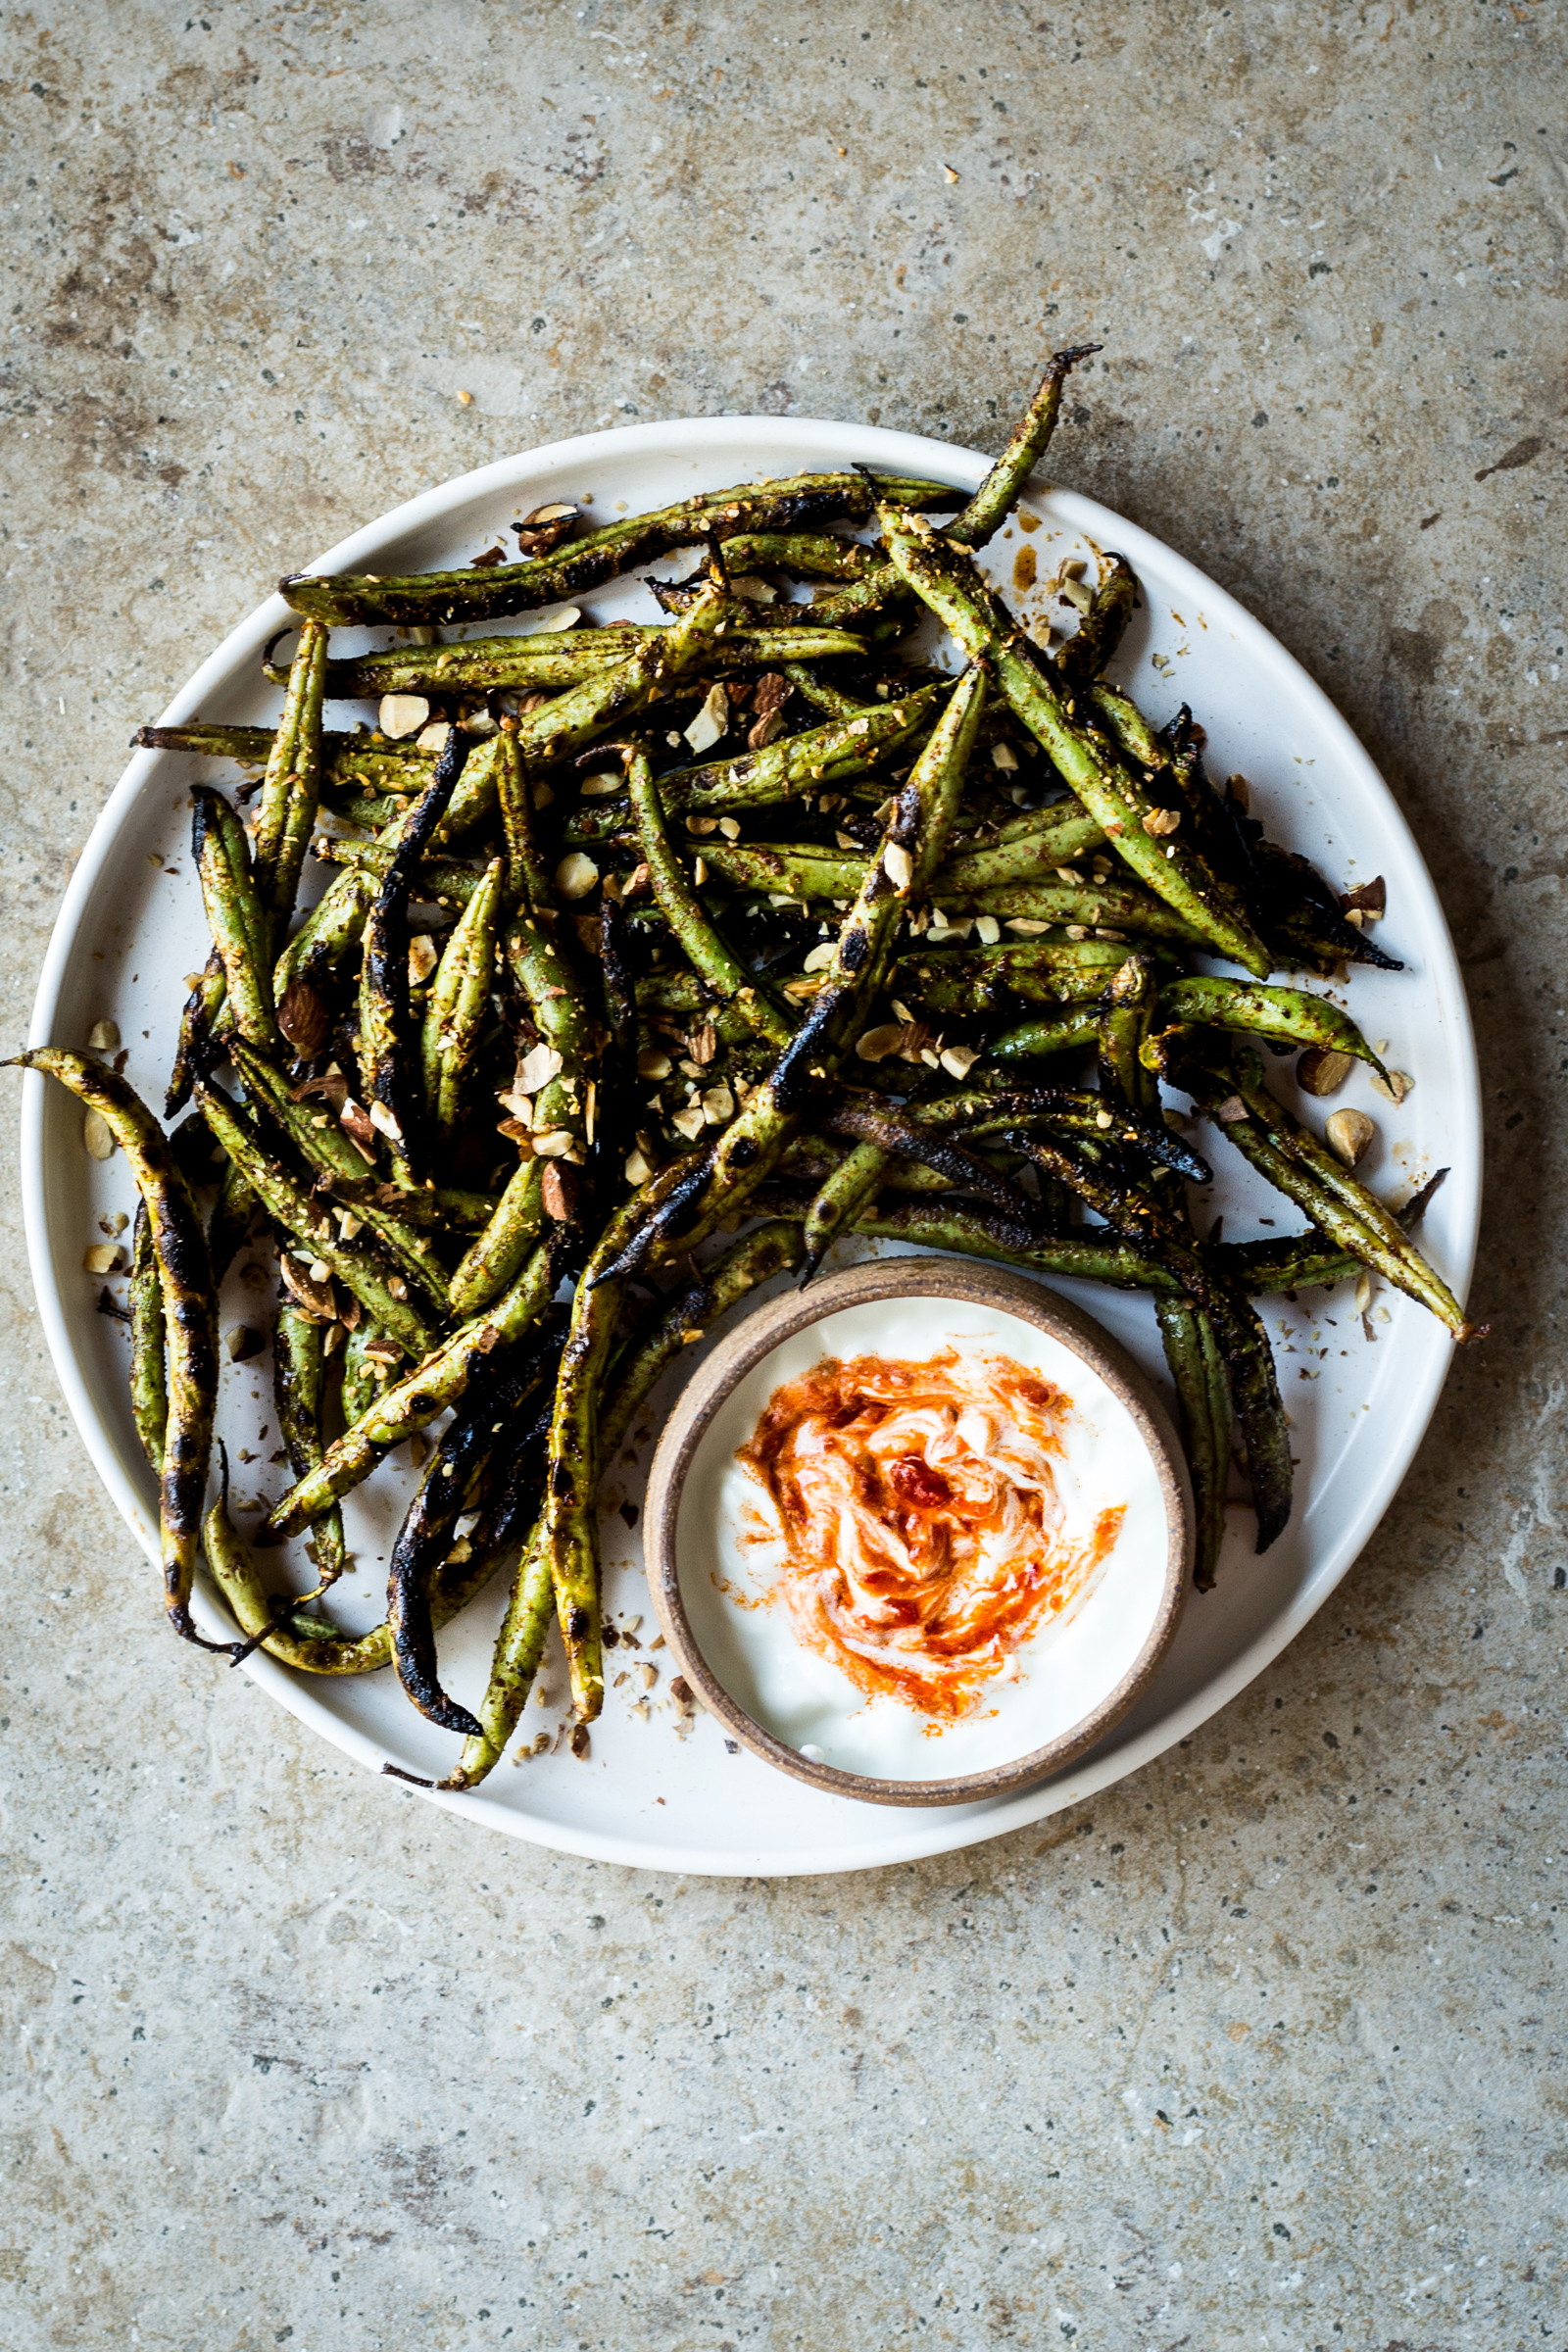 Charred Green Beans with Harissa Yogurt  (you can use any color of the beans you received)